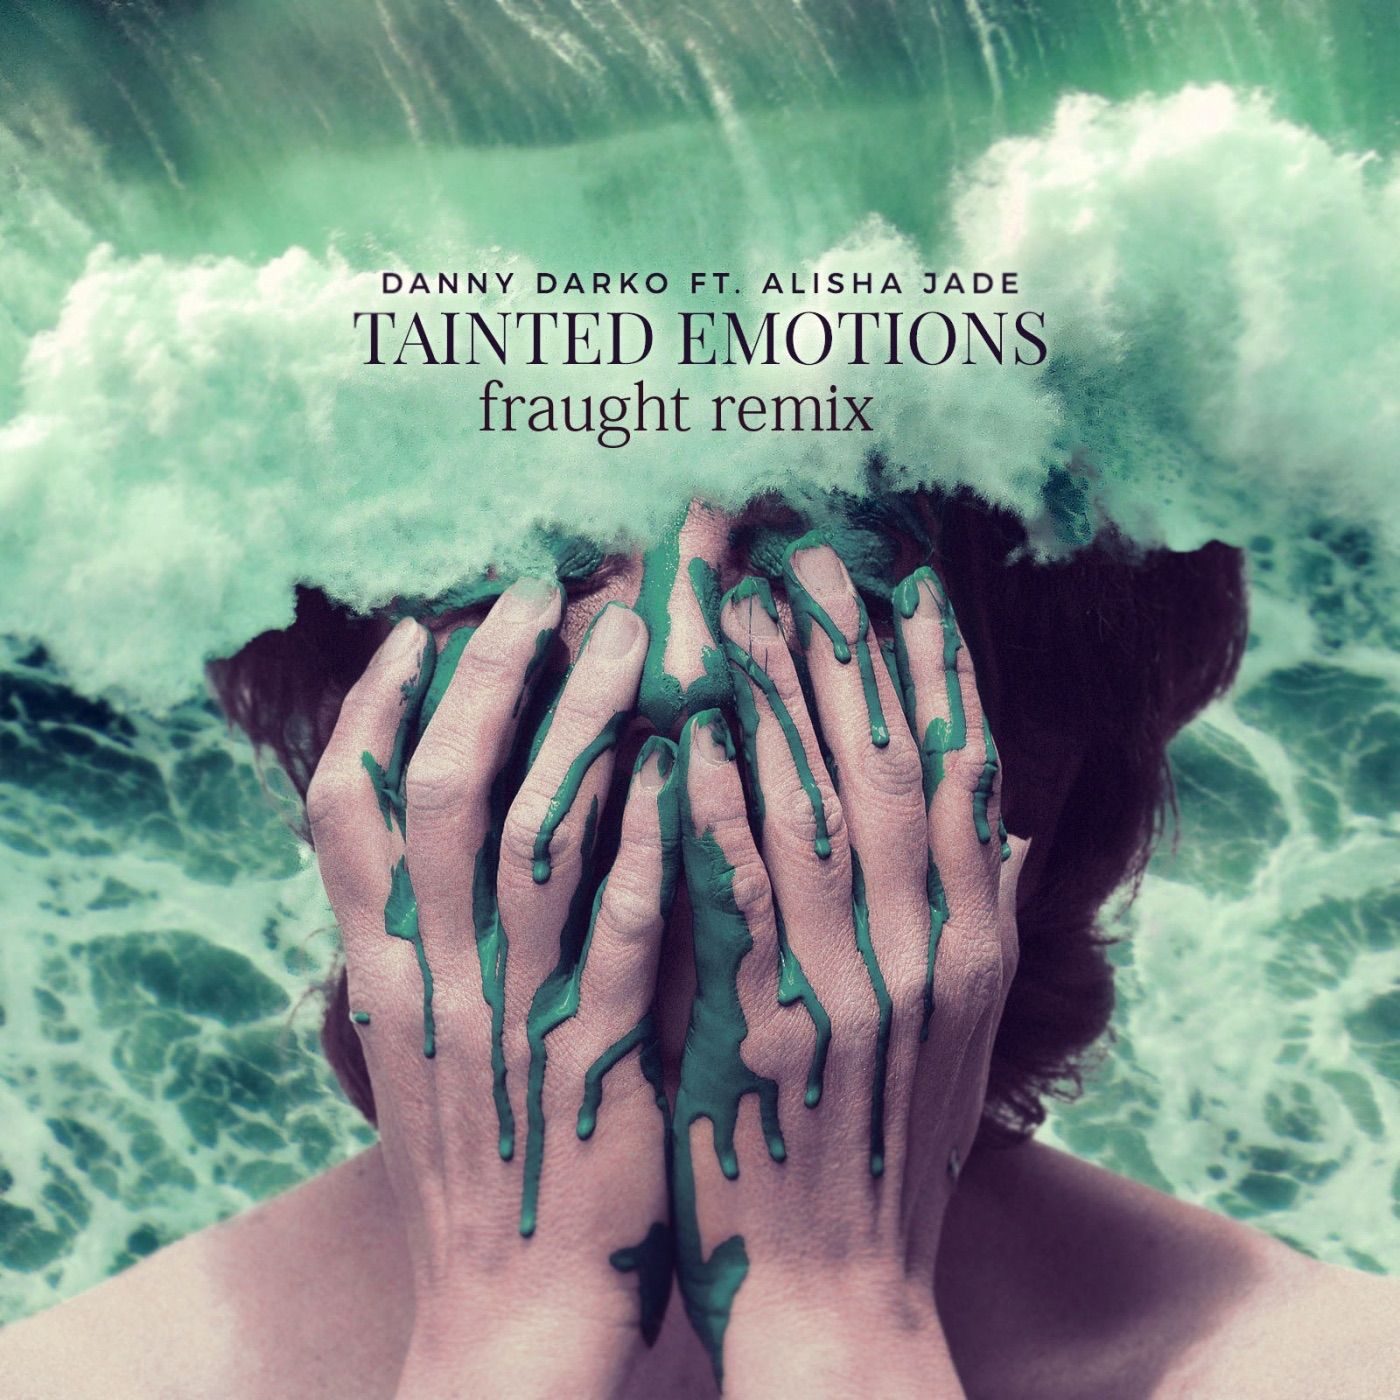 Tainted Emotions (Fraught Remix) [feat. Alisha Jade] - Single